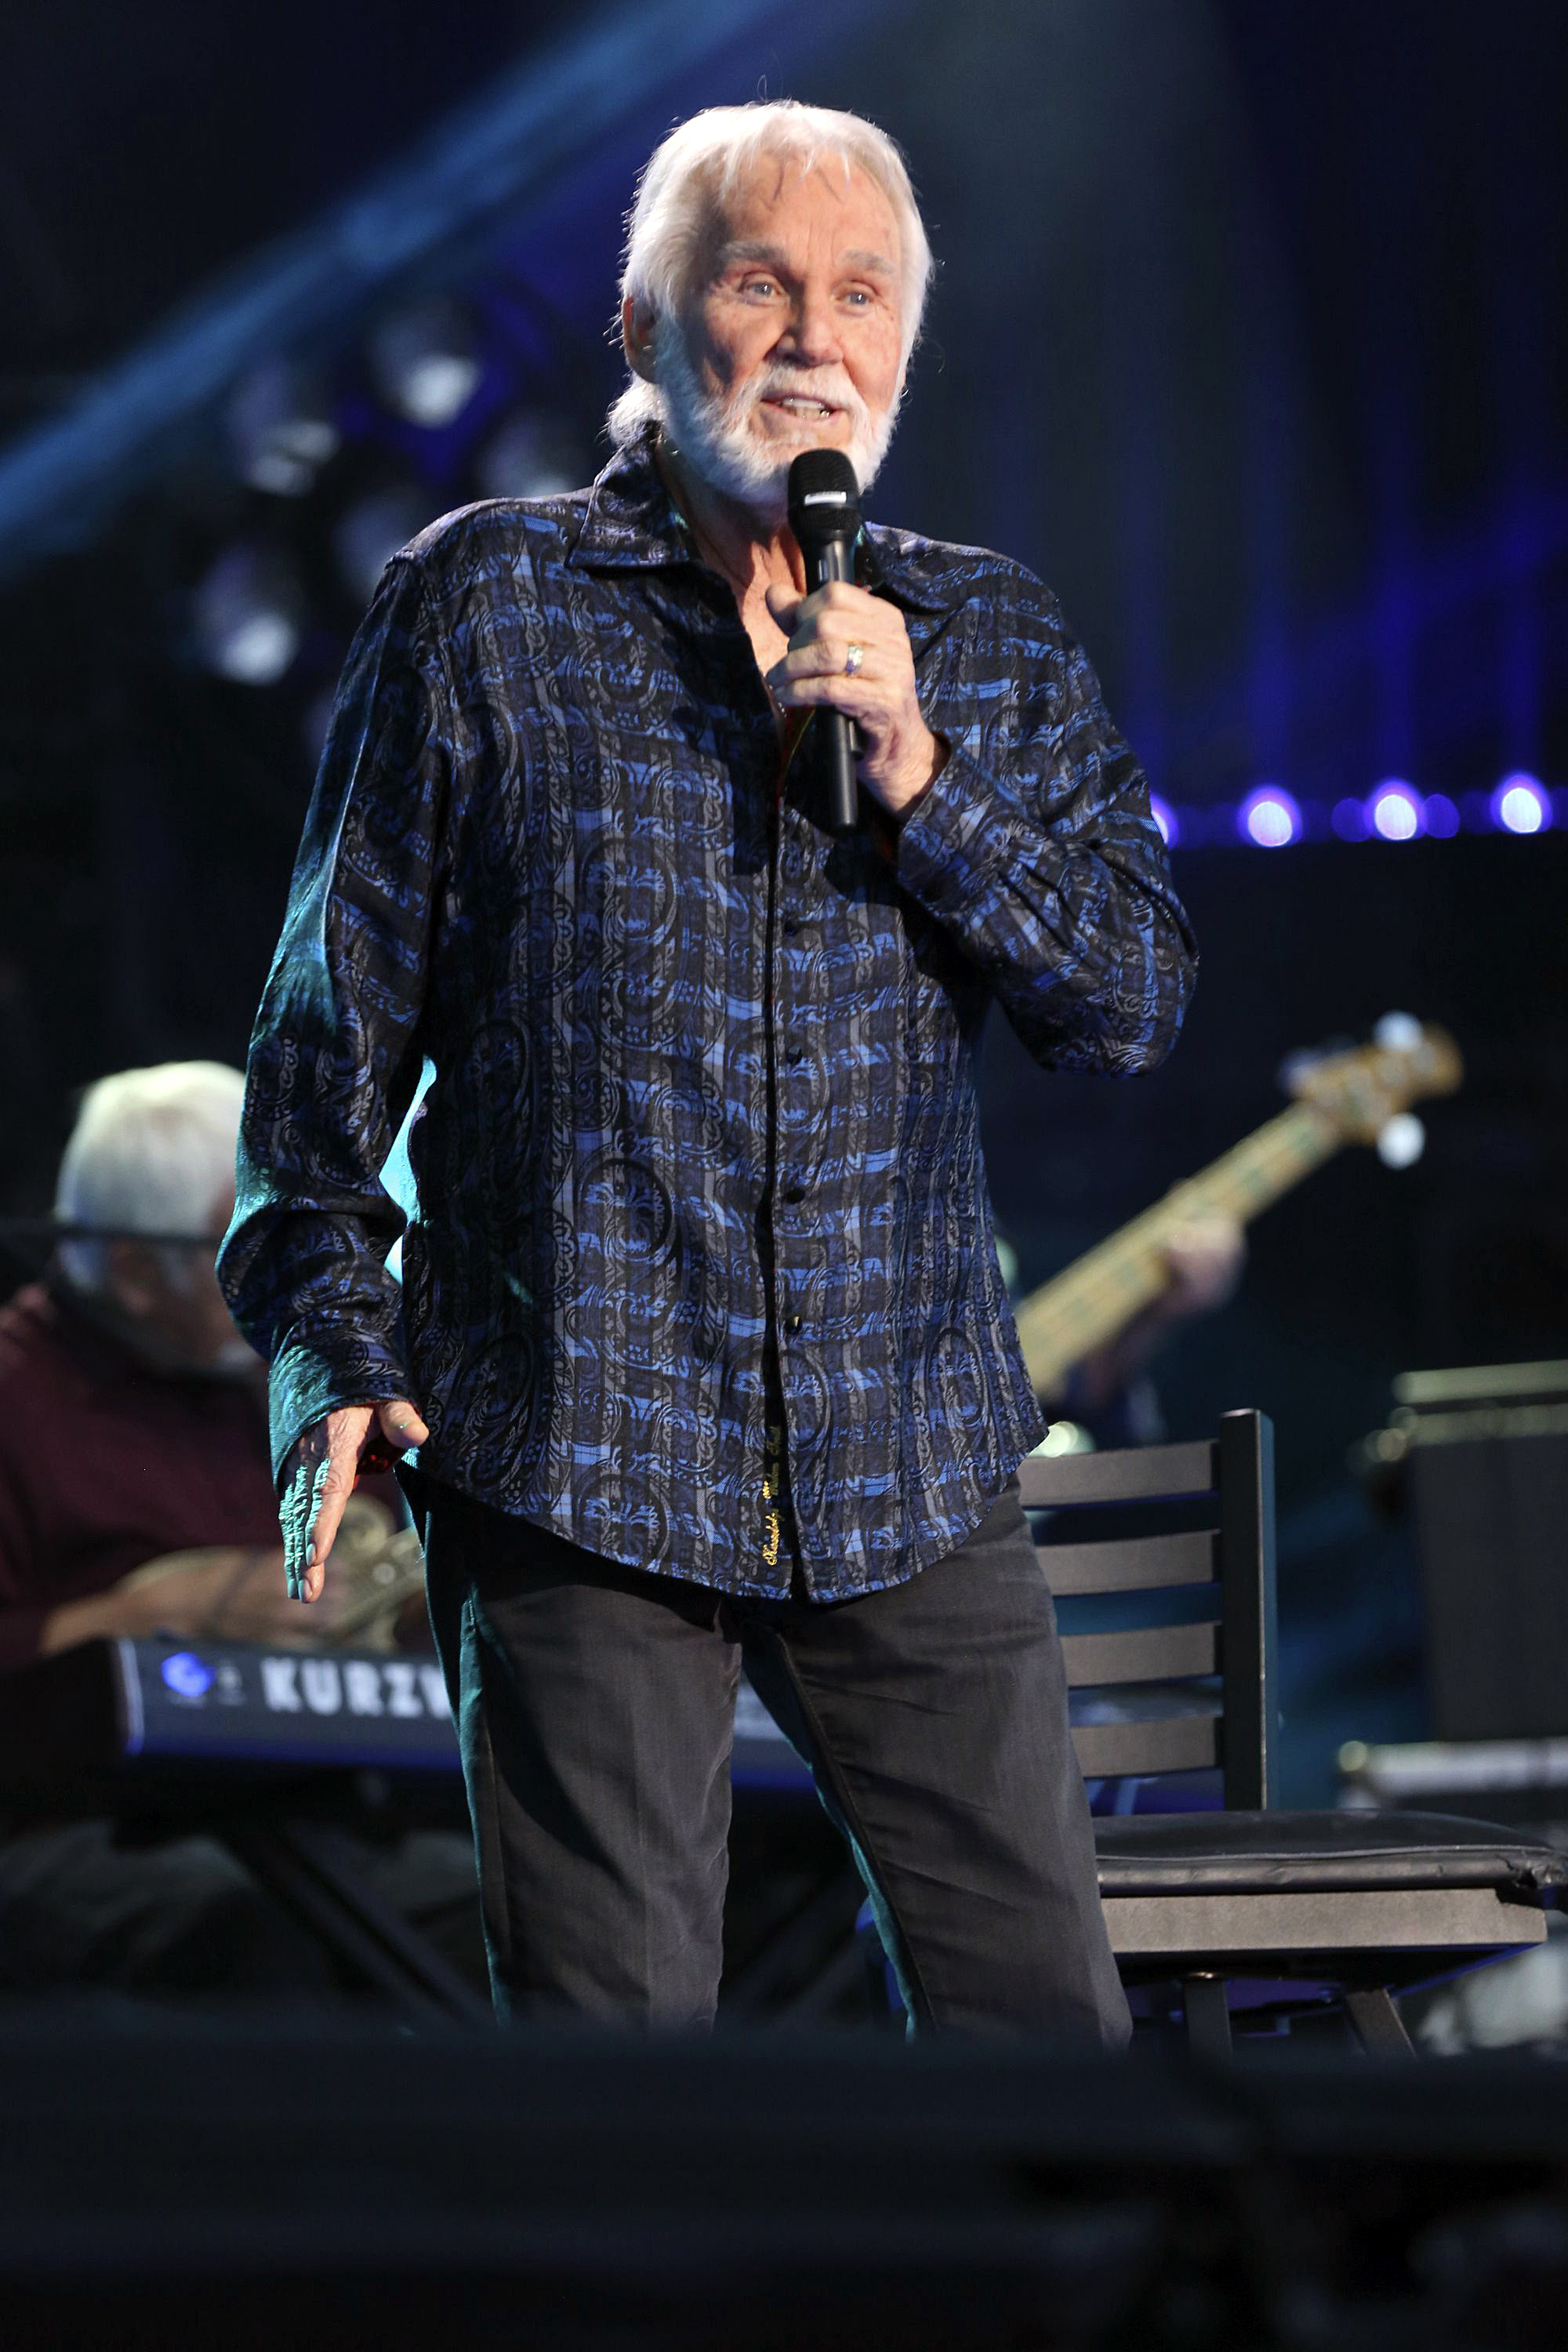 Kenny rogers tour canceled due to health challenges rolling stone kenny rogers performs at the 2017 cma music festival at nissan stadium on in nashville m4hsunfo